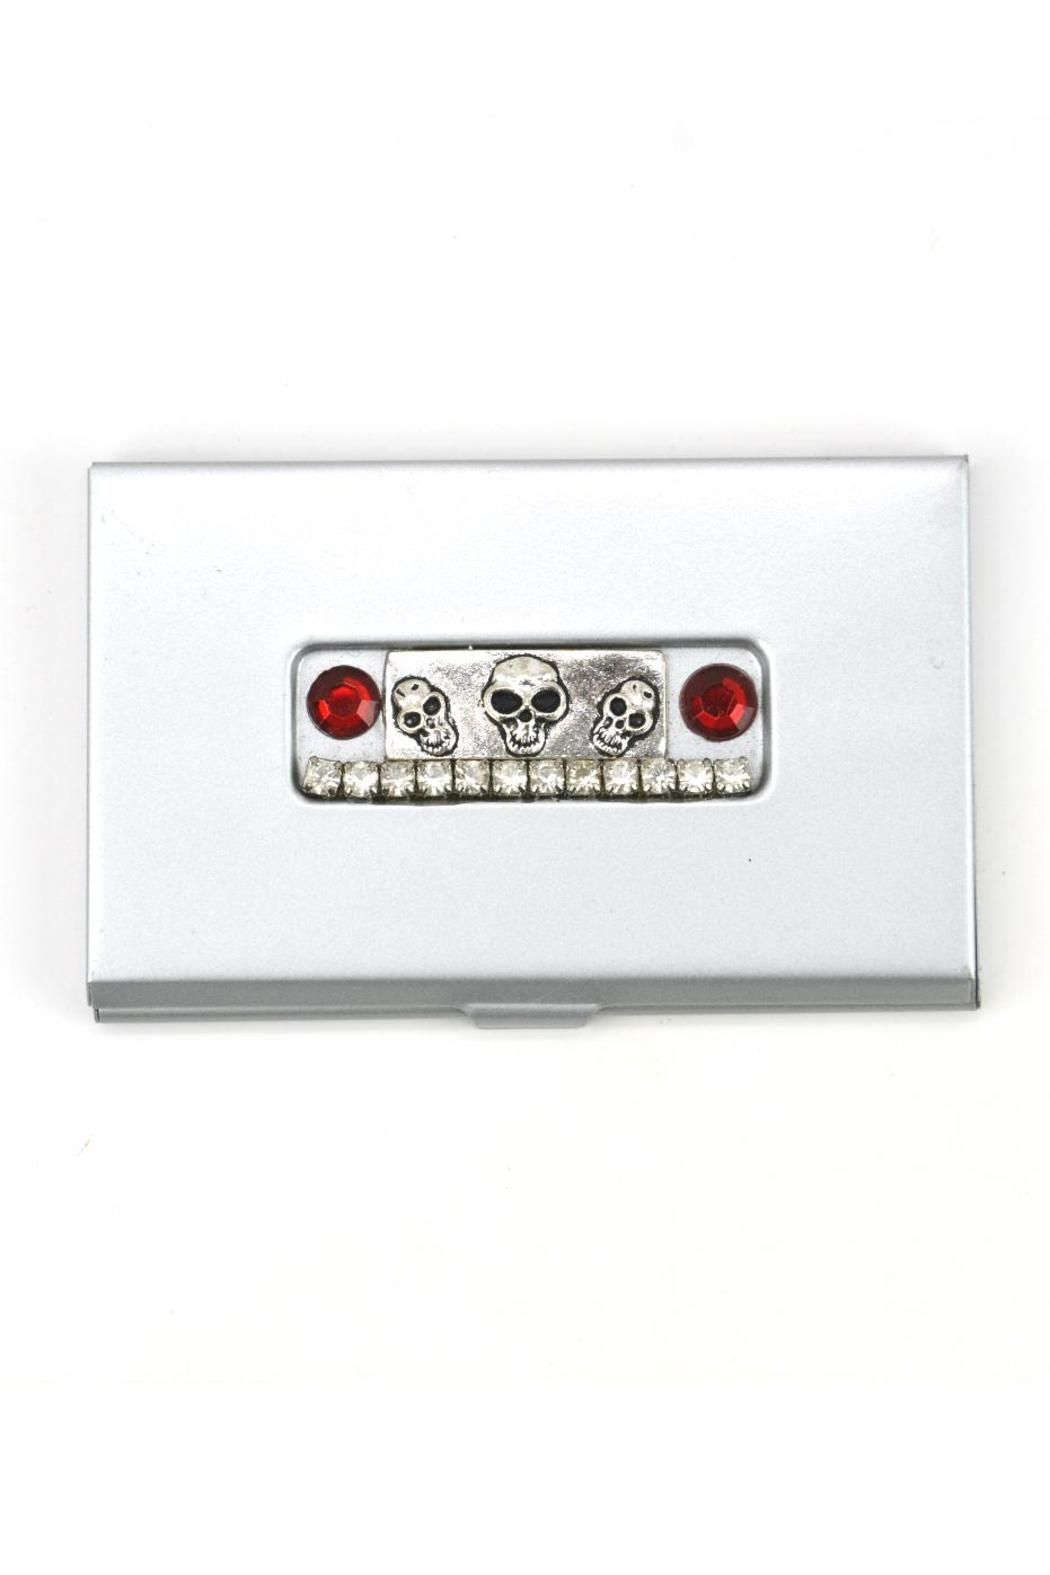 Business Card or Credit Card Holder. This isn't your average business card holder. It is accented with skulls, rhinestones & red crystals.   Business Card Holder by Karma and Coconuts. Home & Gifts - Gifts - Stationery & Office Naples, Florida